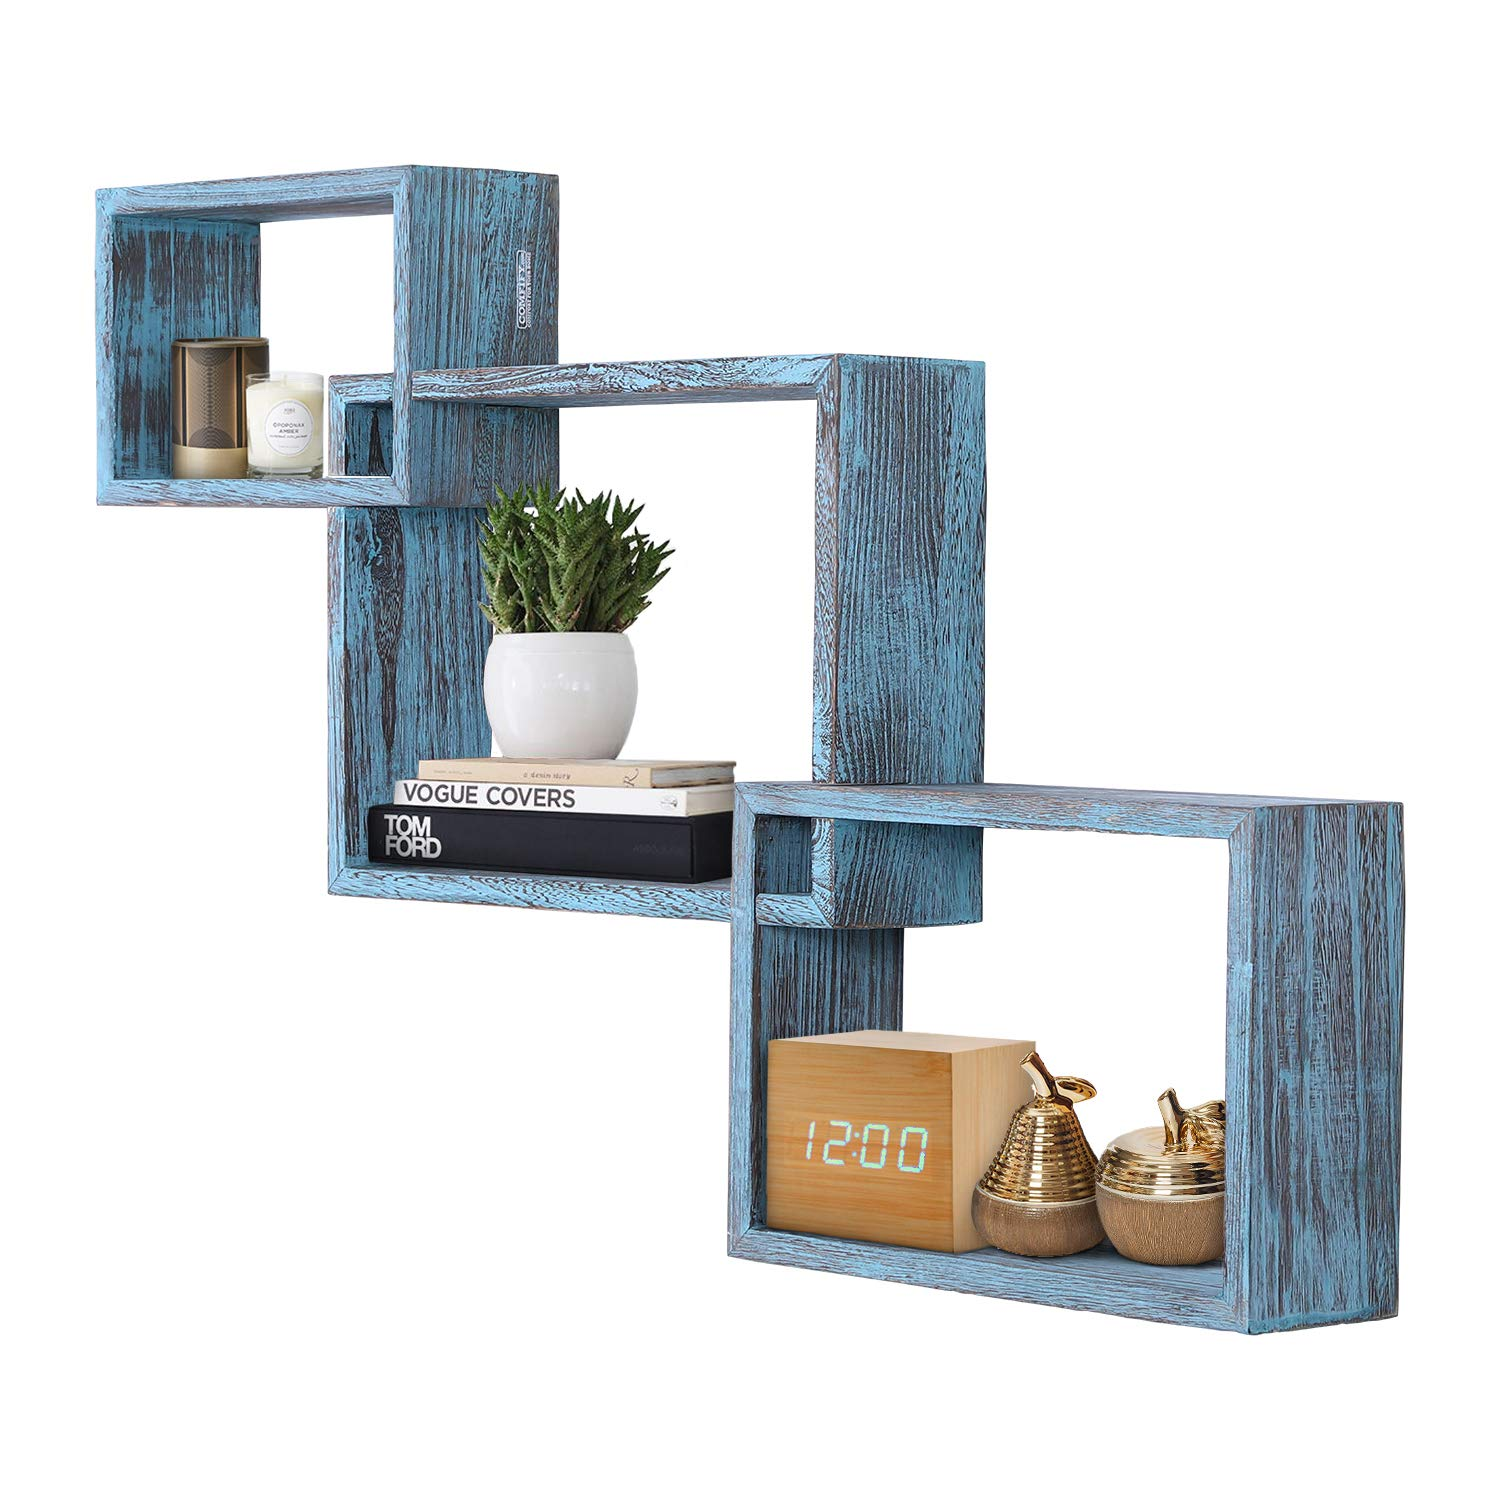 Rustic Wall Mounted Tier Square Shaped Floating Shelves – Set of 3 – Screws and Anchors Included - Farmhouse Wooden Shelves for Bedroom, Living Room and more – Rustic Wall Barn Décor – Rustic Blue